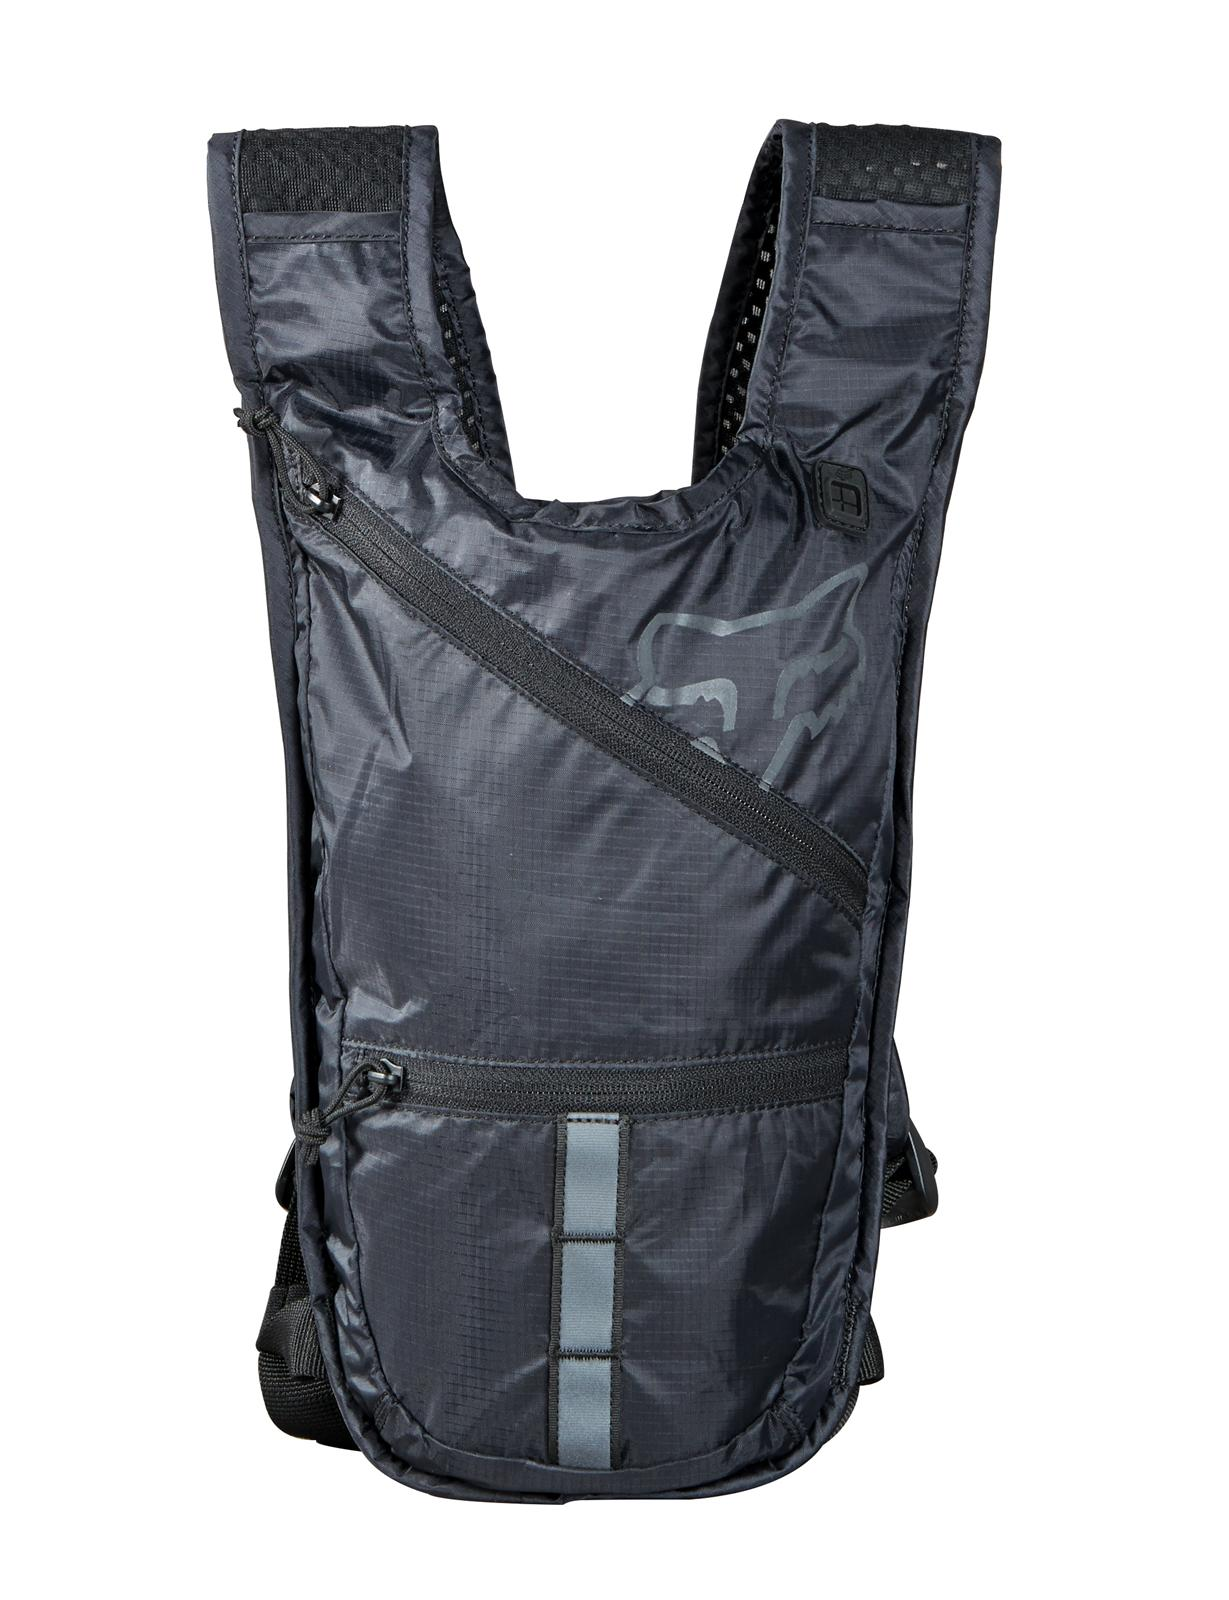 Fox Racing Low Pro Hydration Packs 11725-001-OS - Free Shipping on Orders  Over $99 at Summit Racing